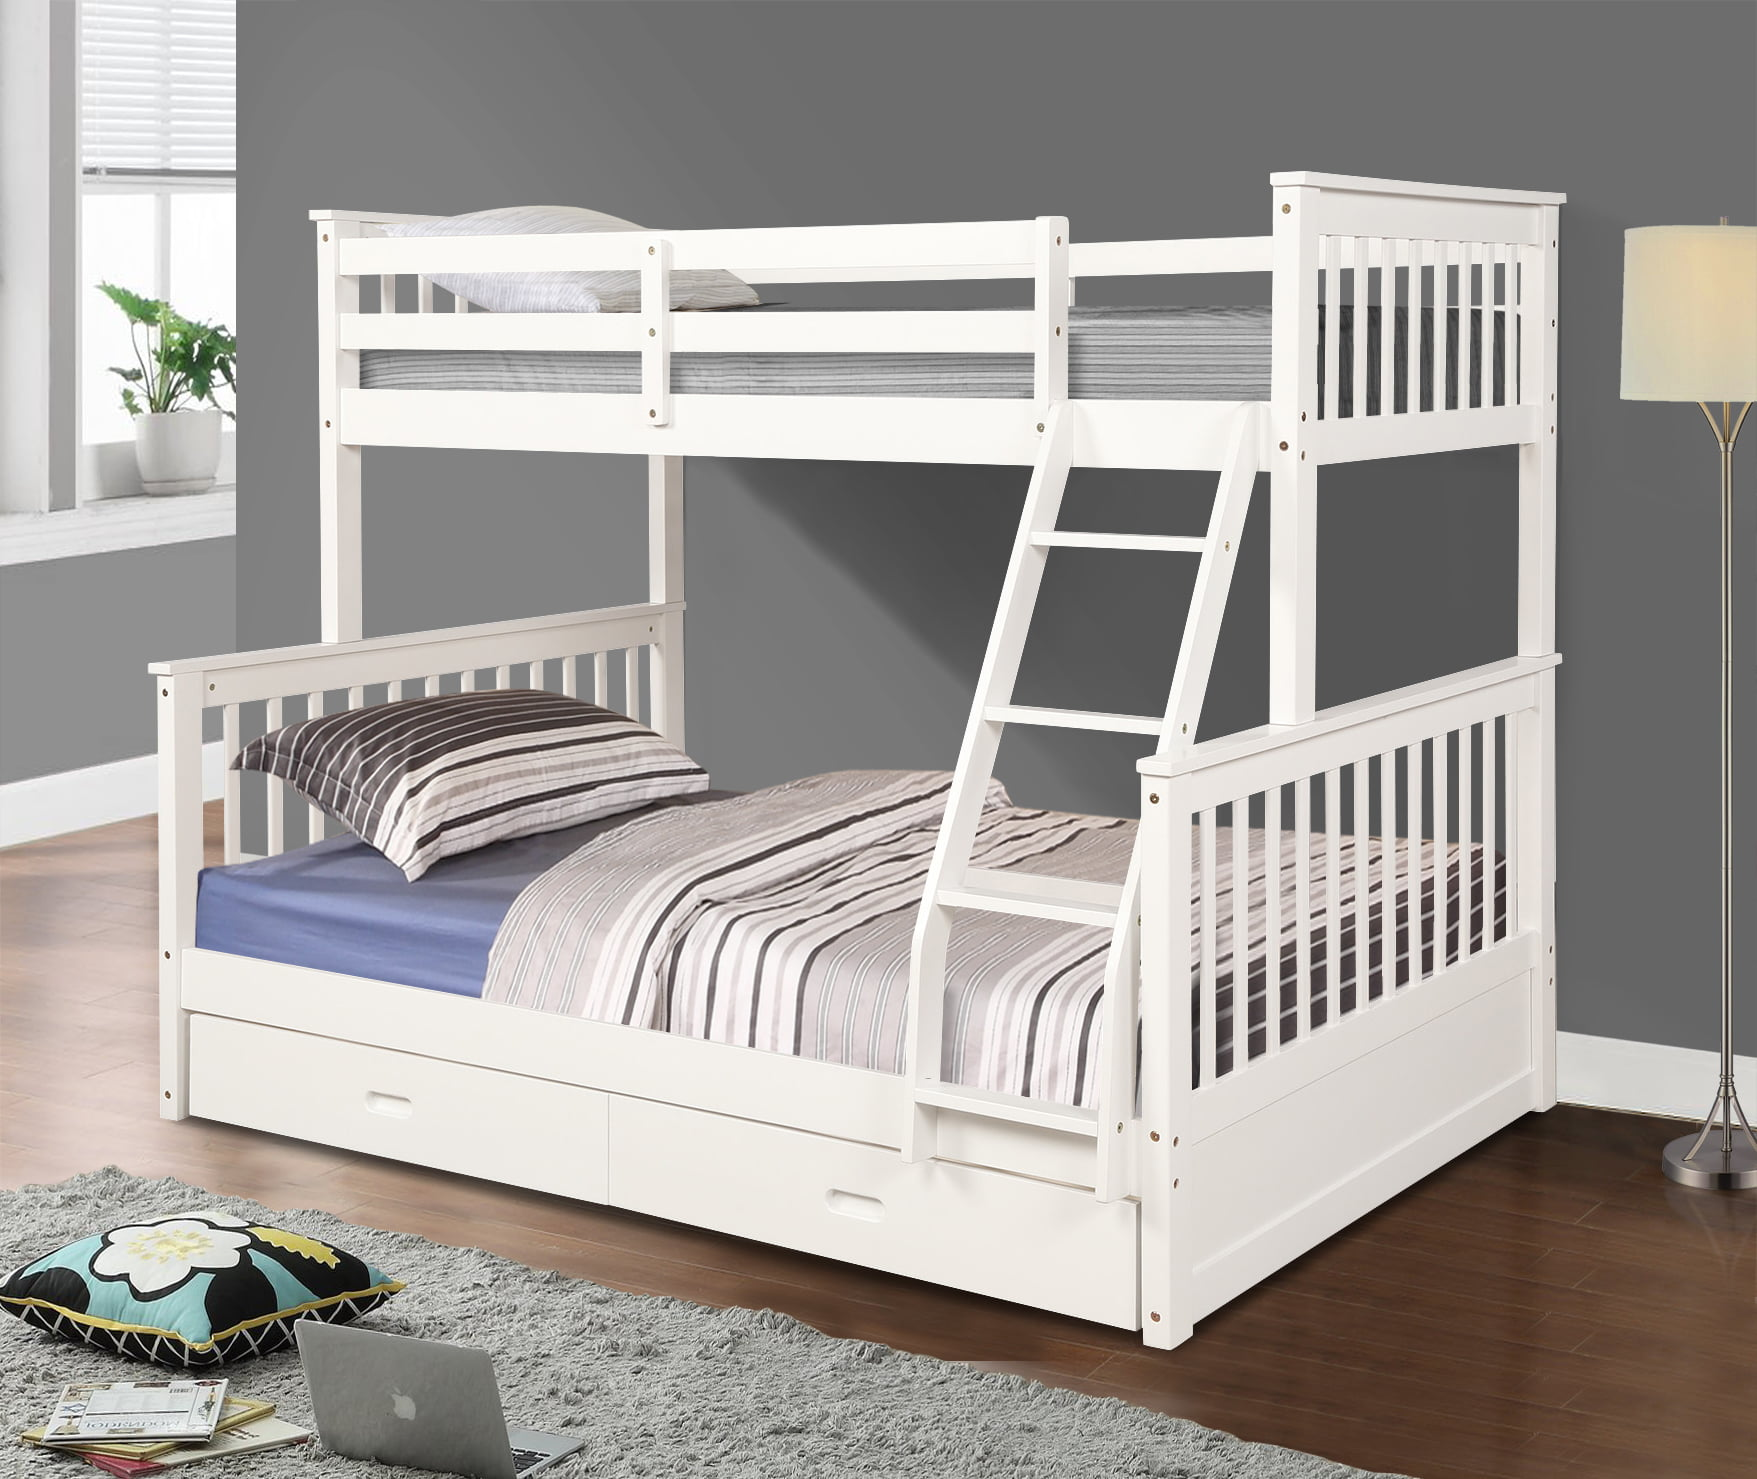 Picture of: Bunk Beds Twin Over Full Solid Wood Bunk Bed Nbsp Kids Twin Over Full Bunk Beds Bunk Bed Organizer With Four Step Ladder Guardrails 2 Storage Drawers Bunk Beds For Kids Boys Girls White Q7659